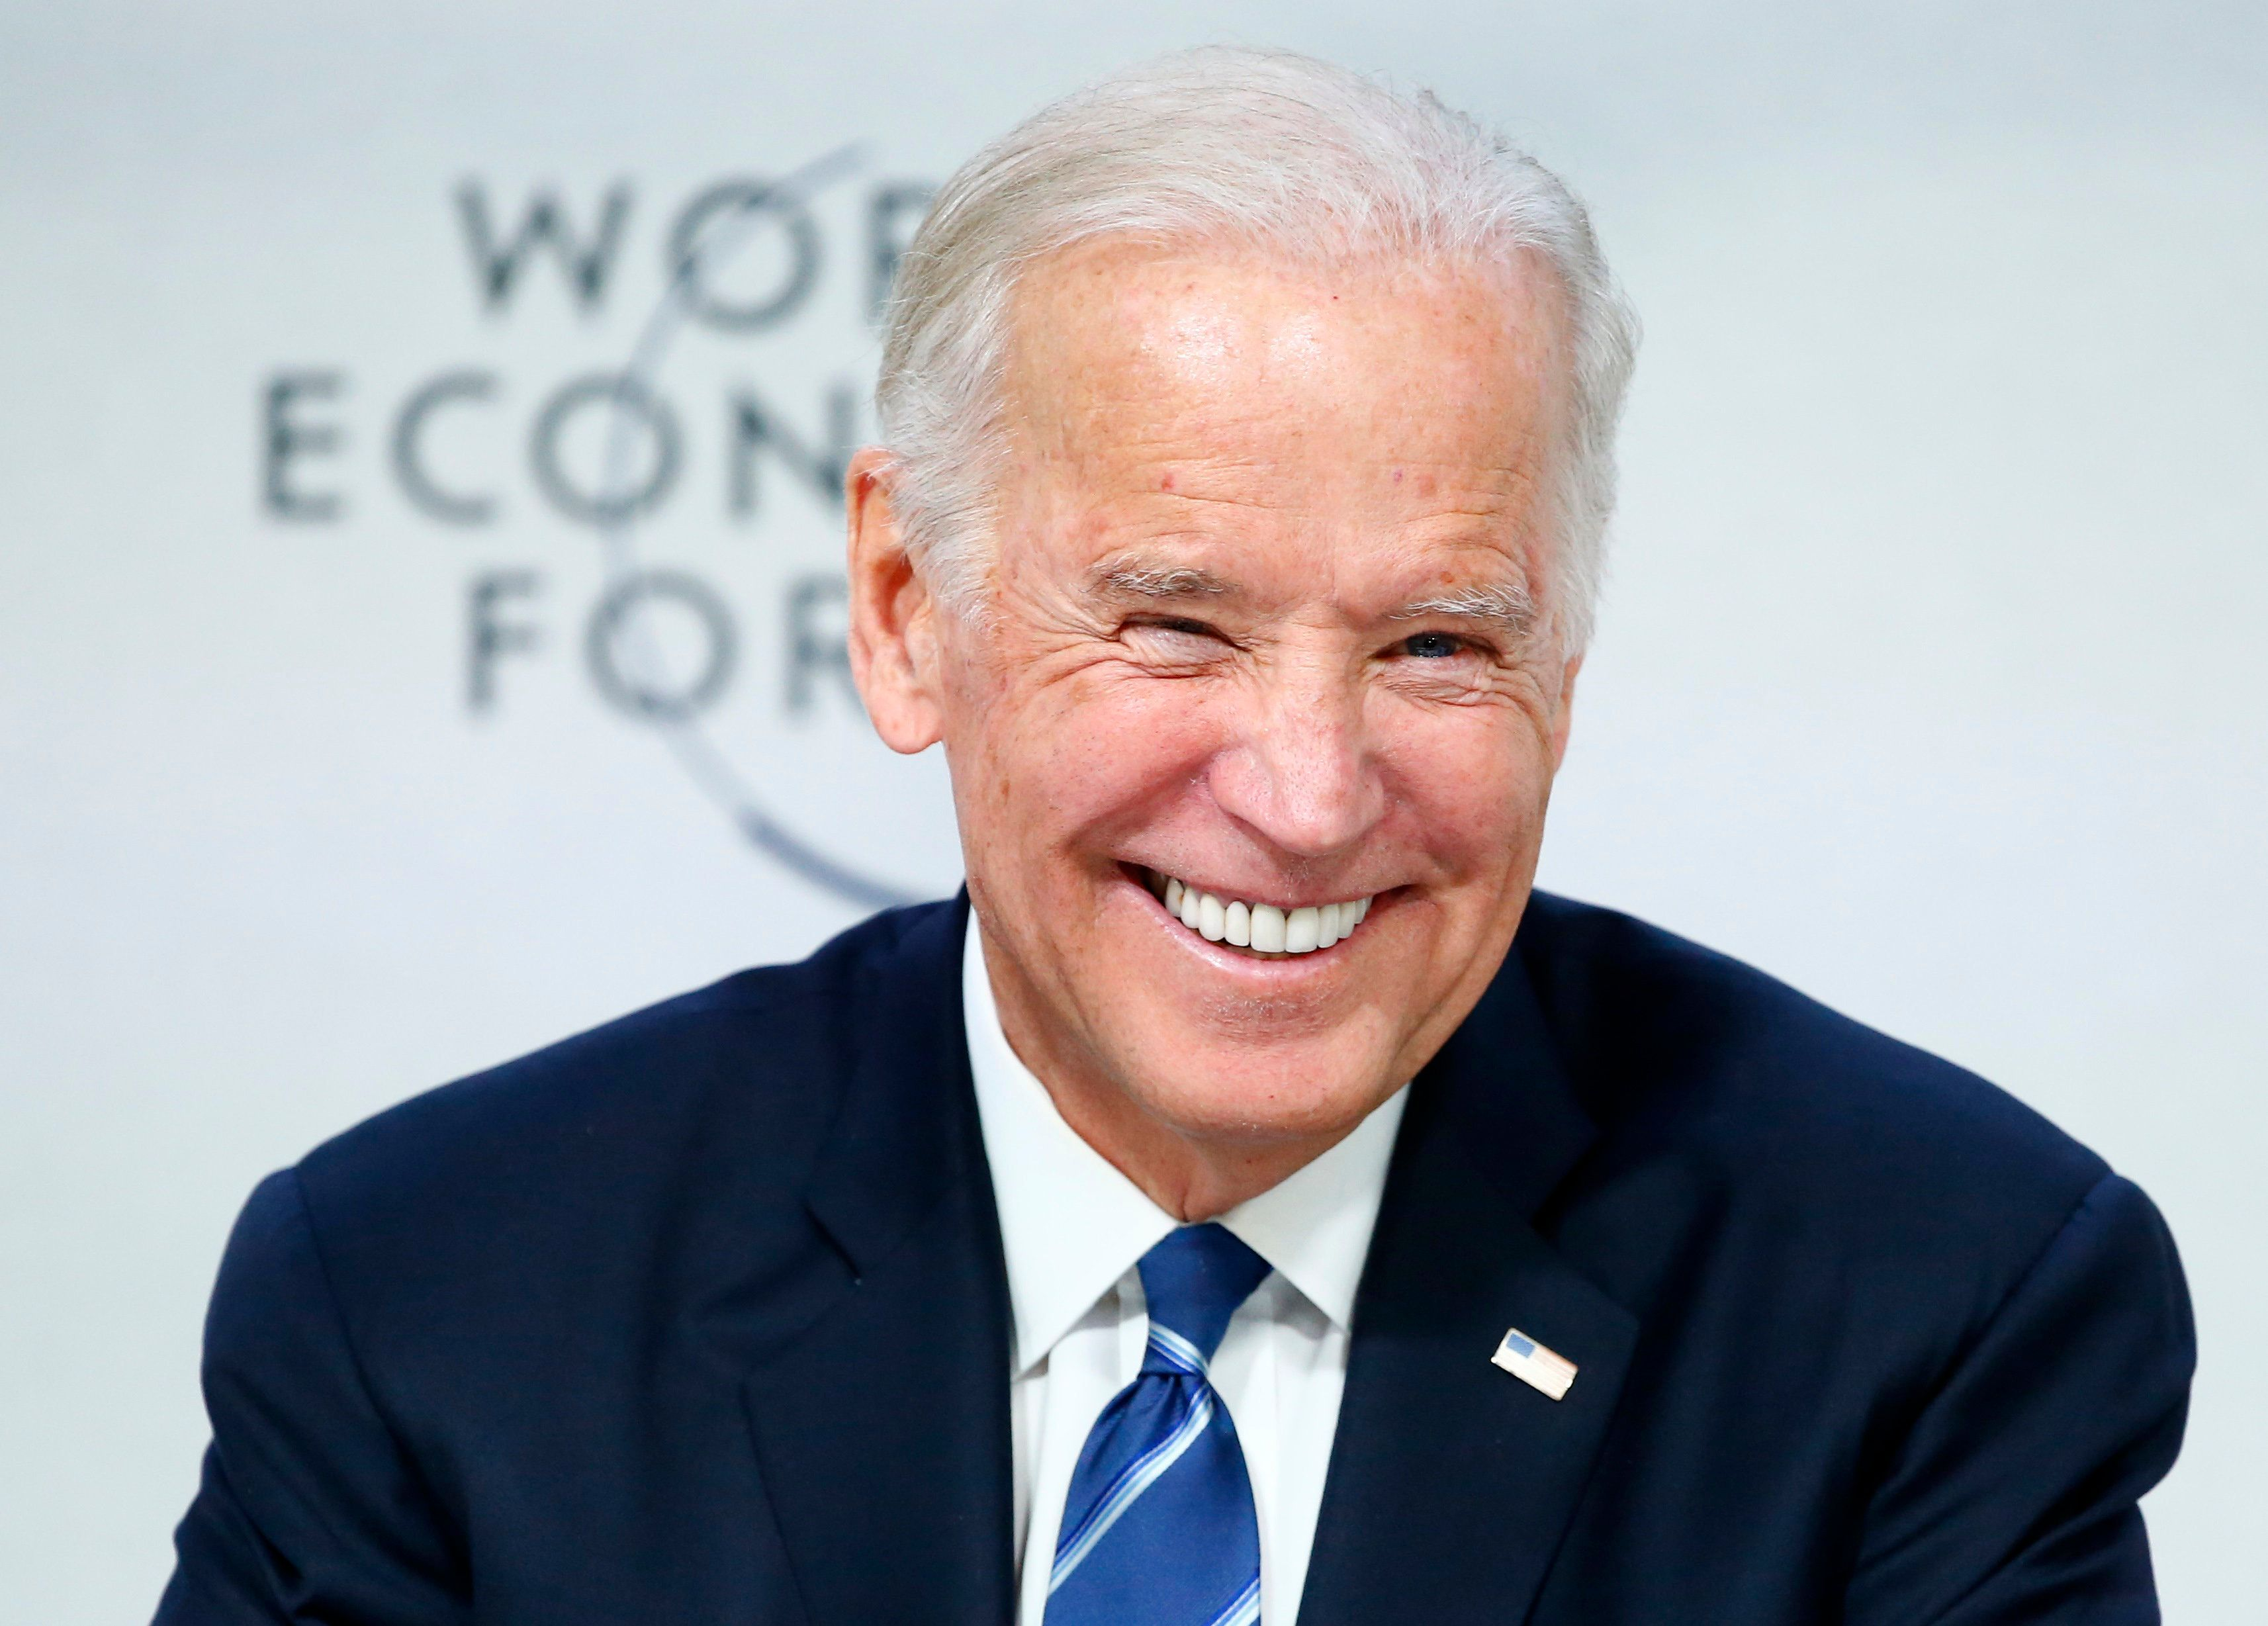 """U.S. Vice President Joe Biden smiles during the session """"Cancer Moonshot: A Call to Action"""" during the annual meeting of the World Economic Forum (WEF) in Davos, Switzerland January 19, 2016. REUTERS/Ruben Sprich"""